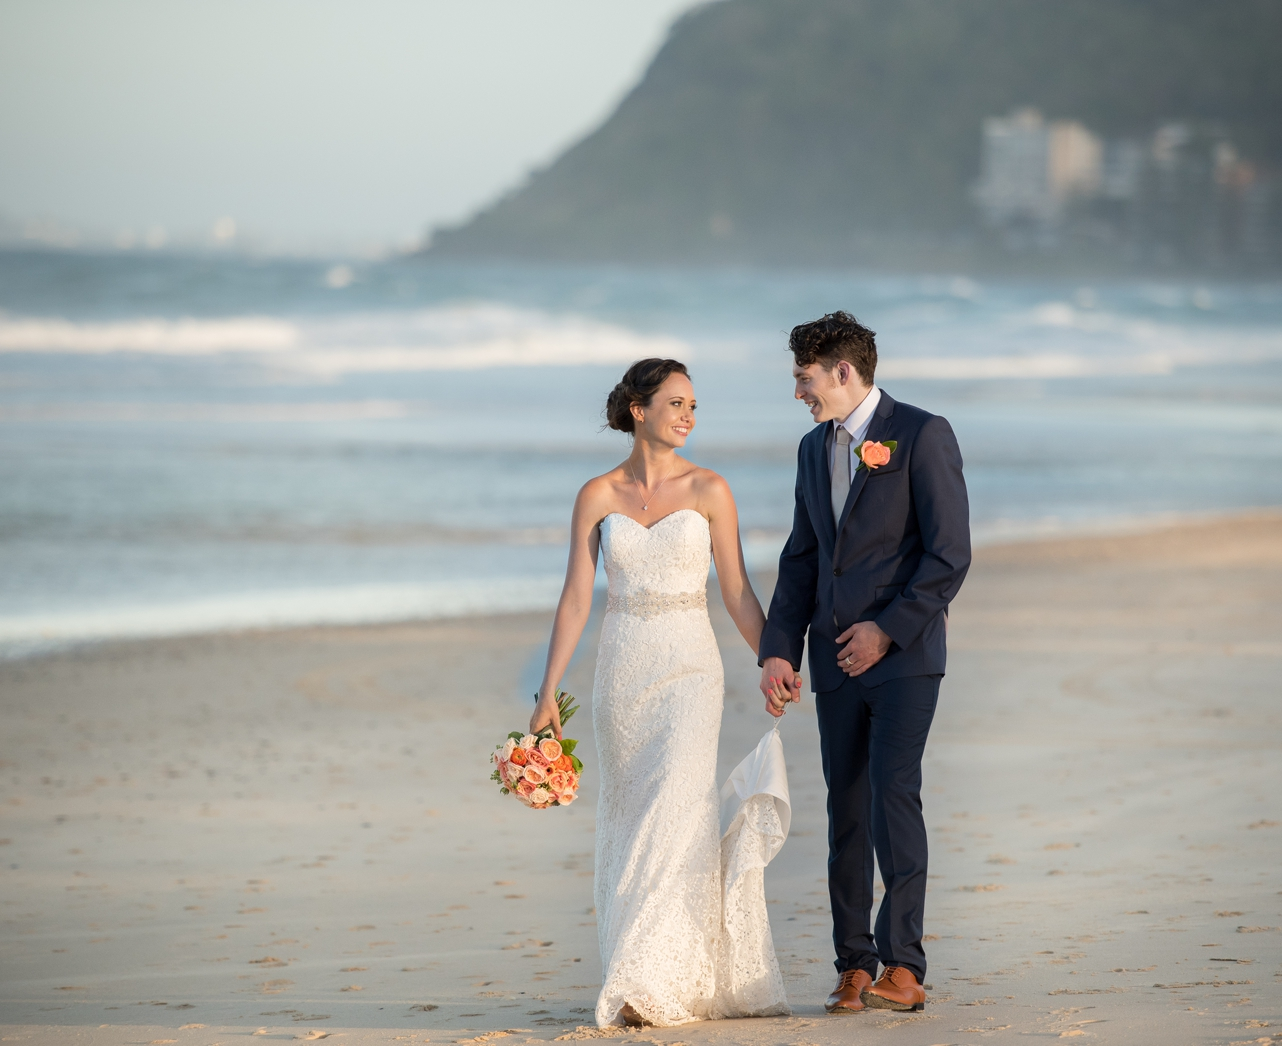 Bride_and_groom_walking_along_the_beach_groom_holing_his_brides_dress